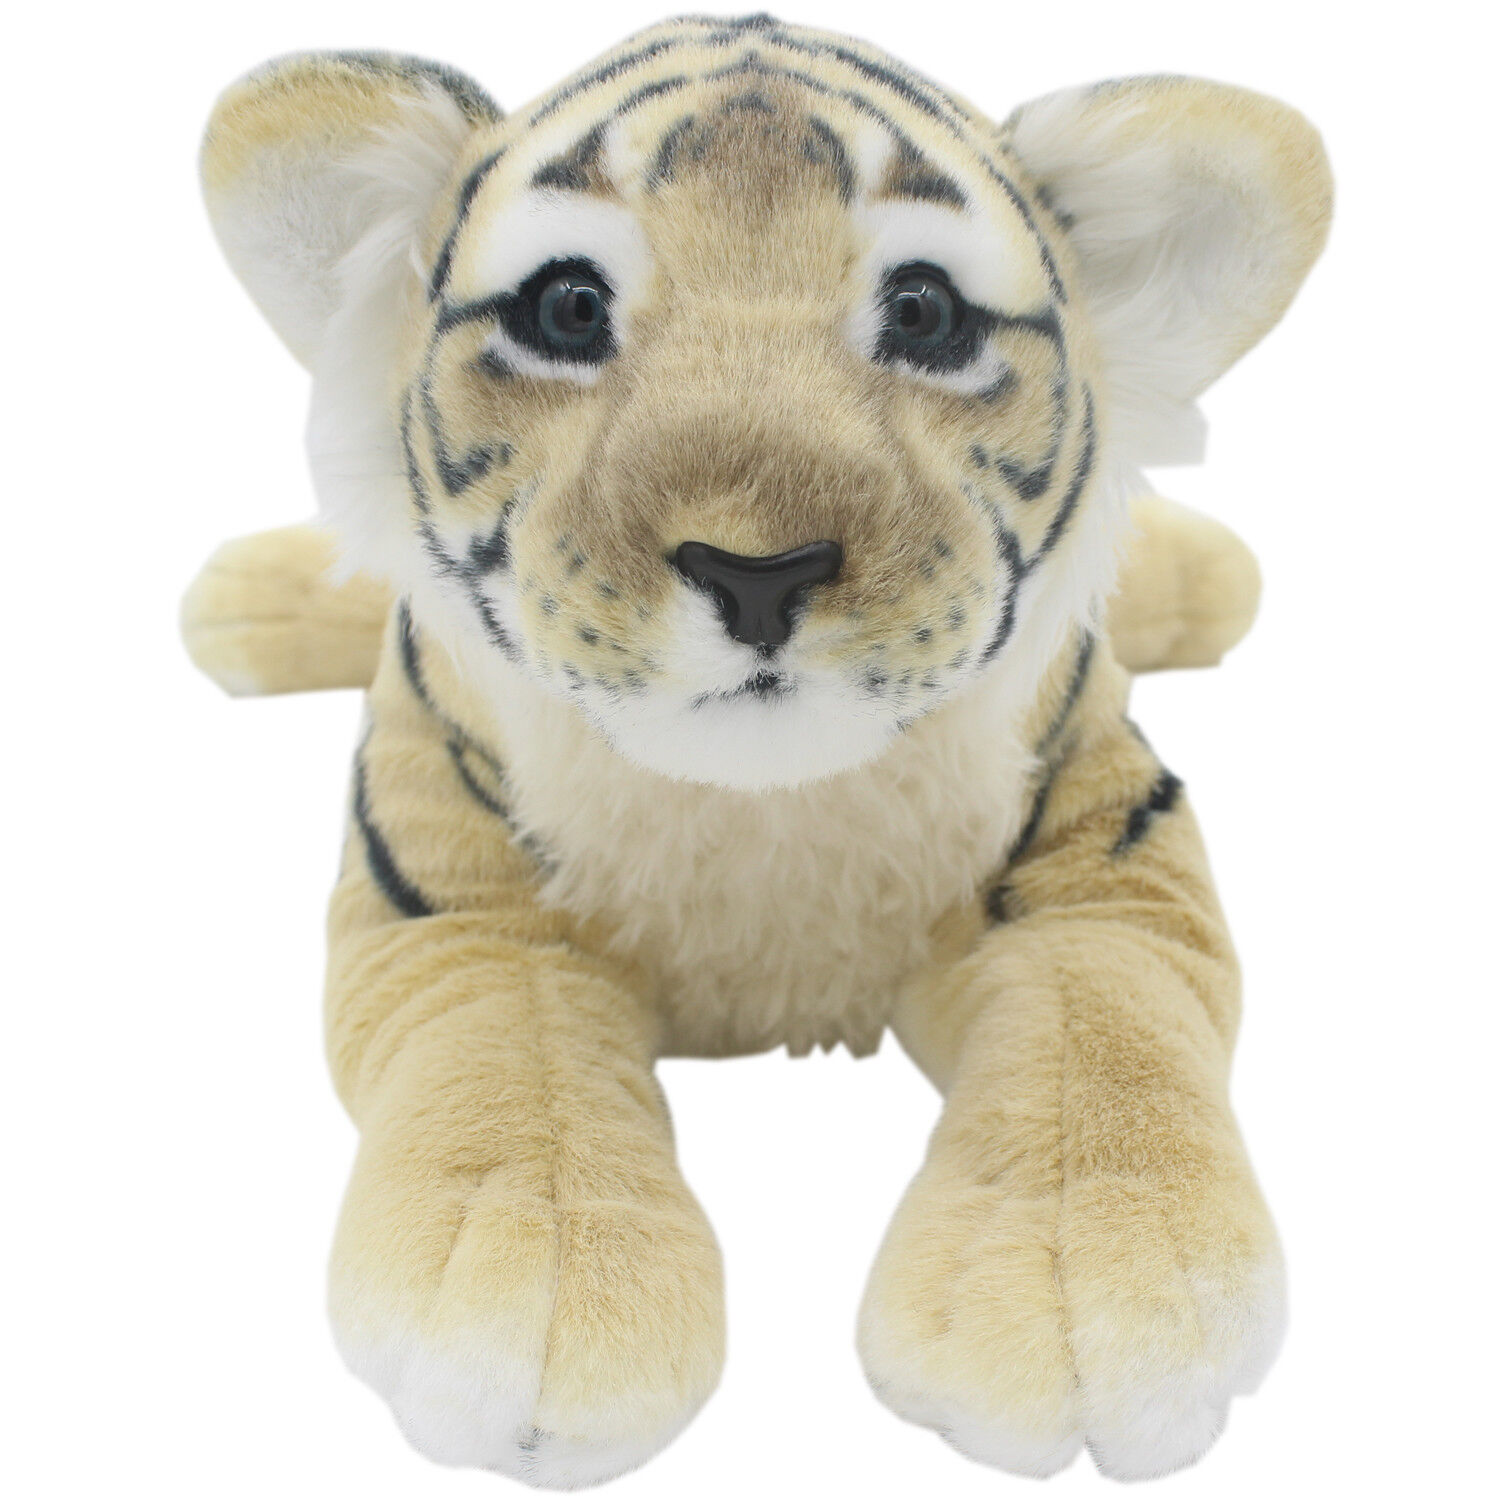 TAGLN Realistic the Jungle Animals Stuffed Plush Lifelike To